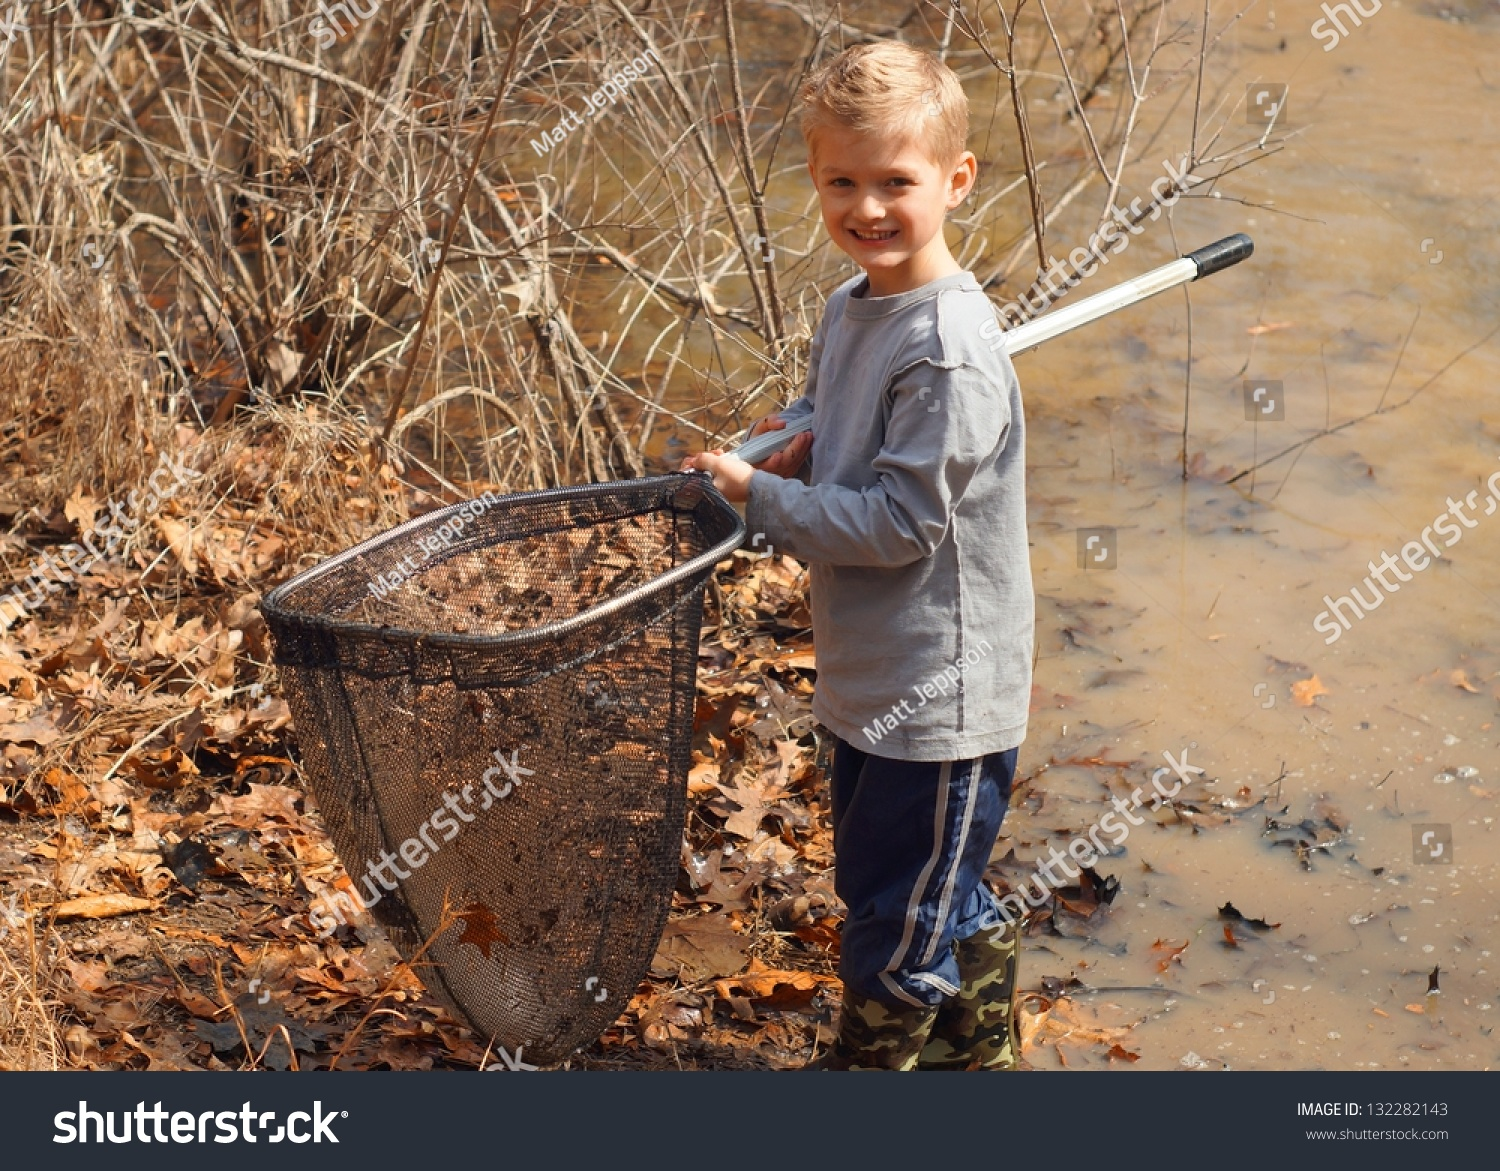 Boy using net catch tadpoles fish stock photo 132282143 for Fish catching net